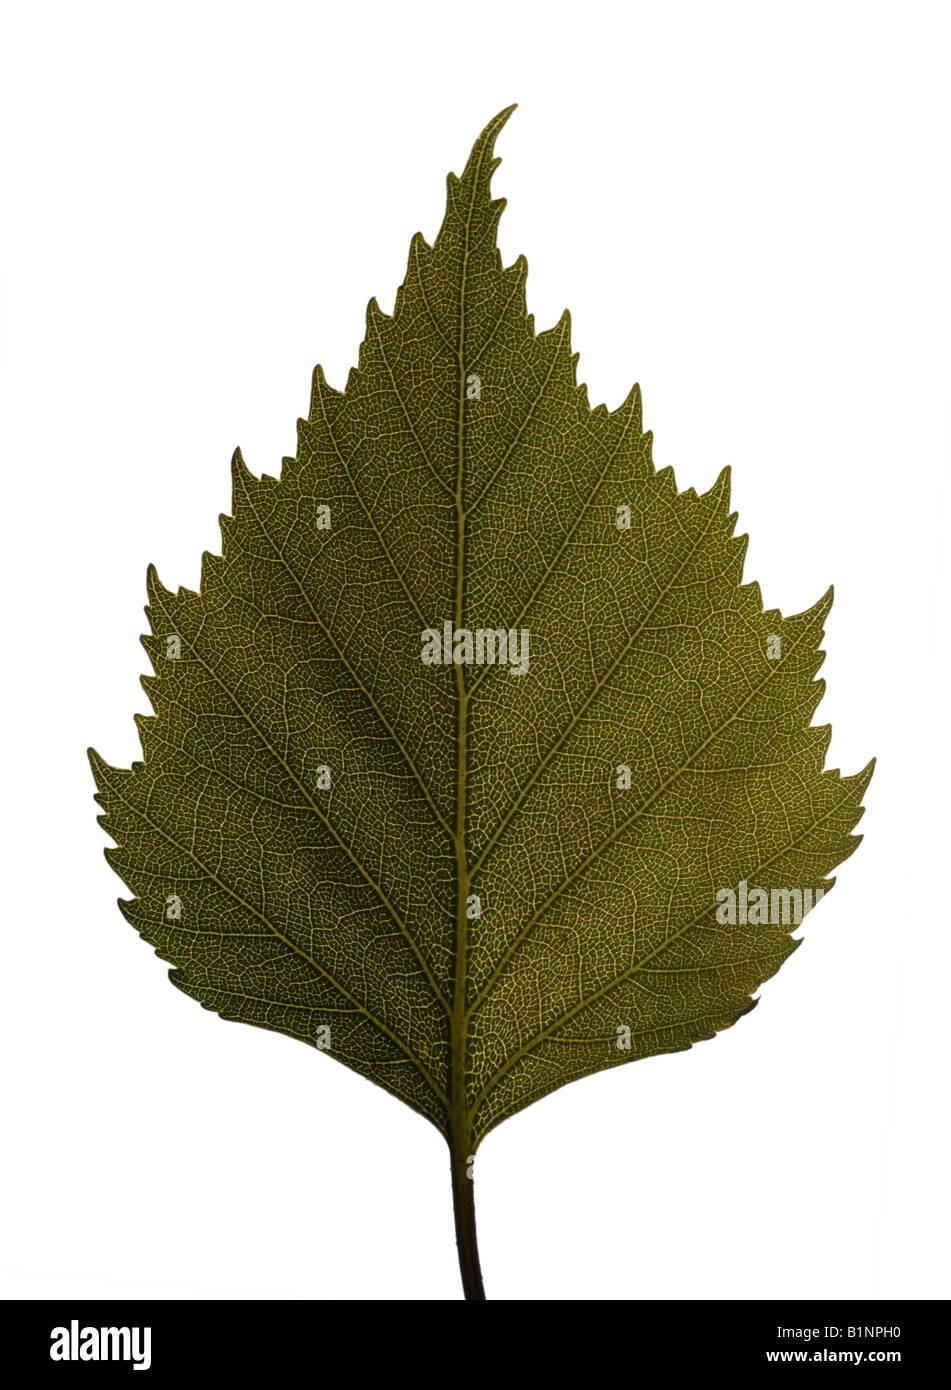 Silver Birch Tree leaf Photo Stock